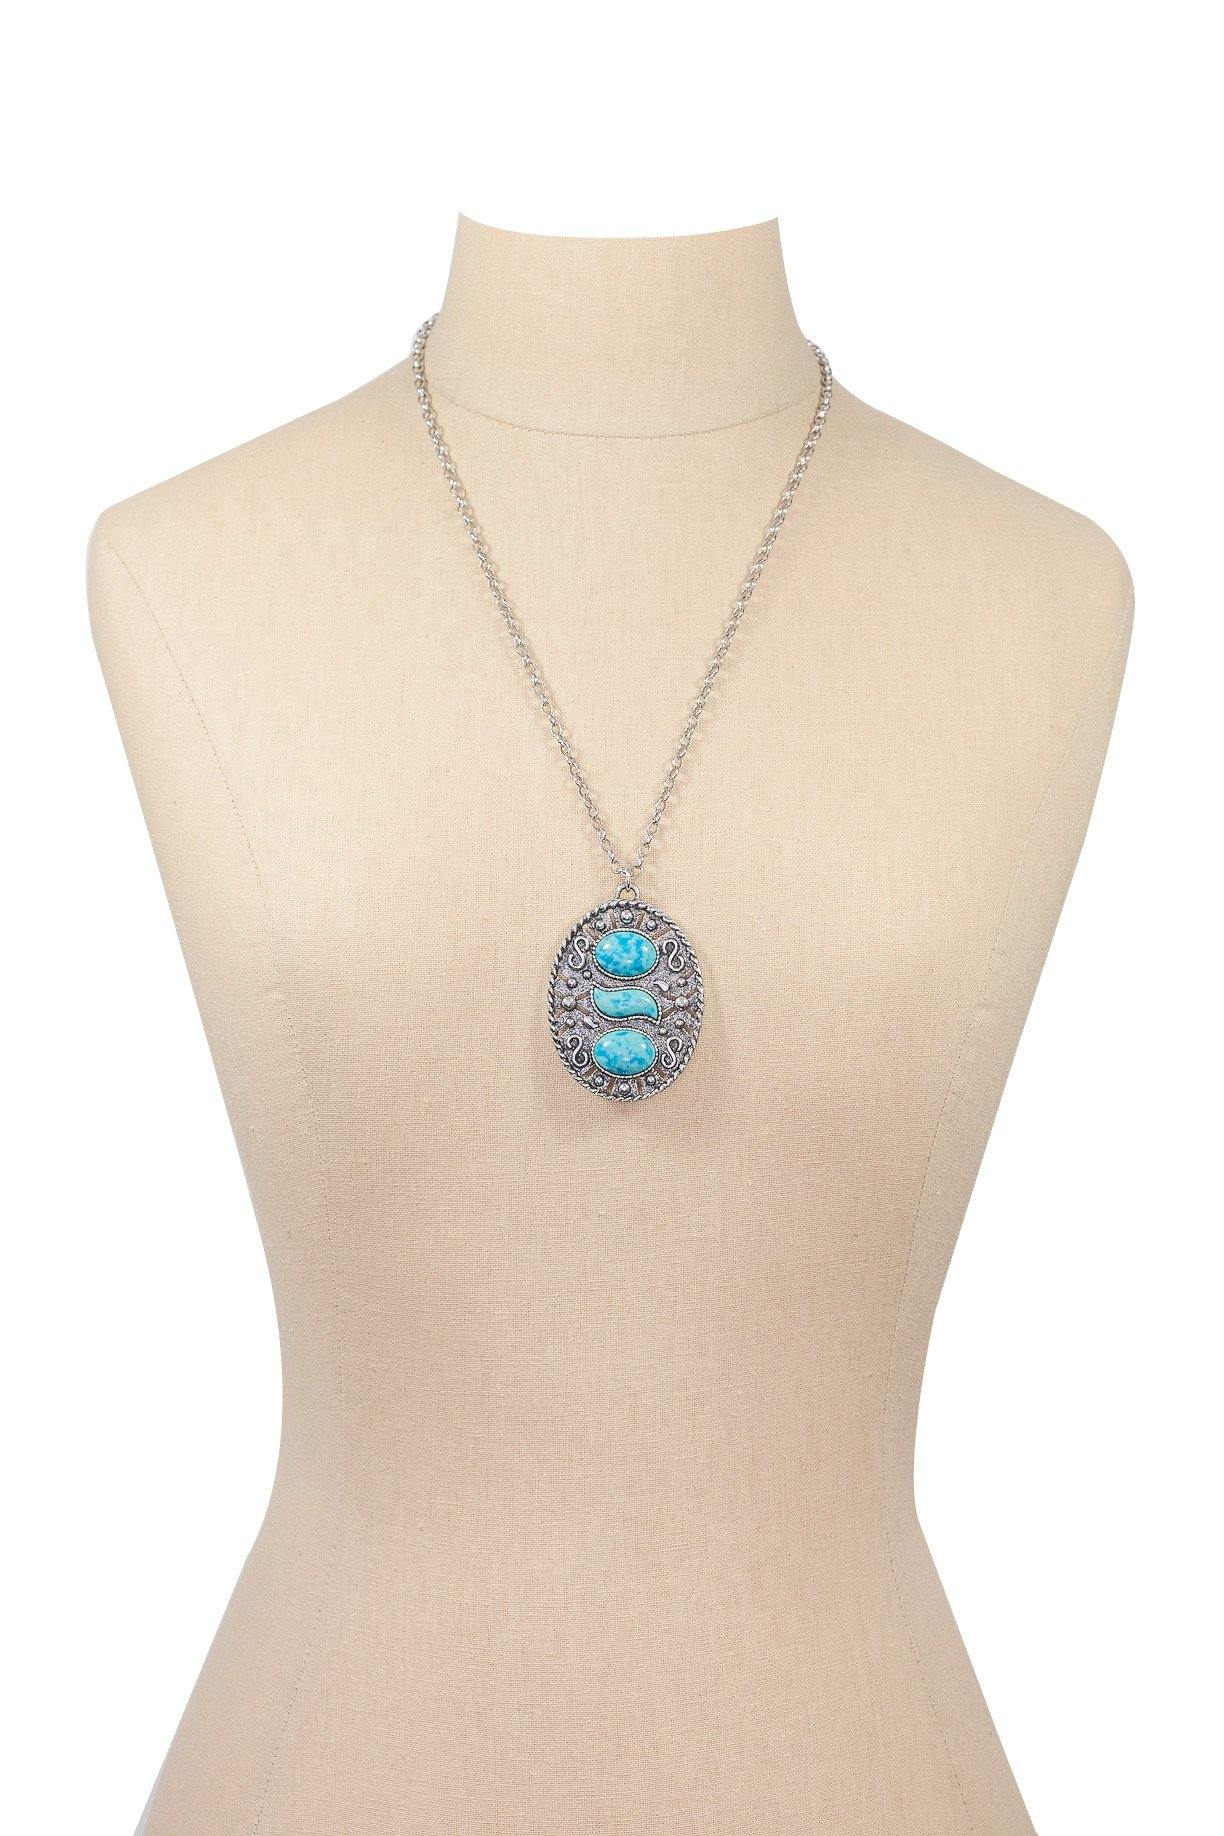 60's__Sarah Coventry__Turquoise Pendant Necklace